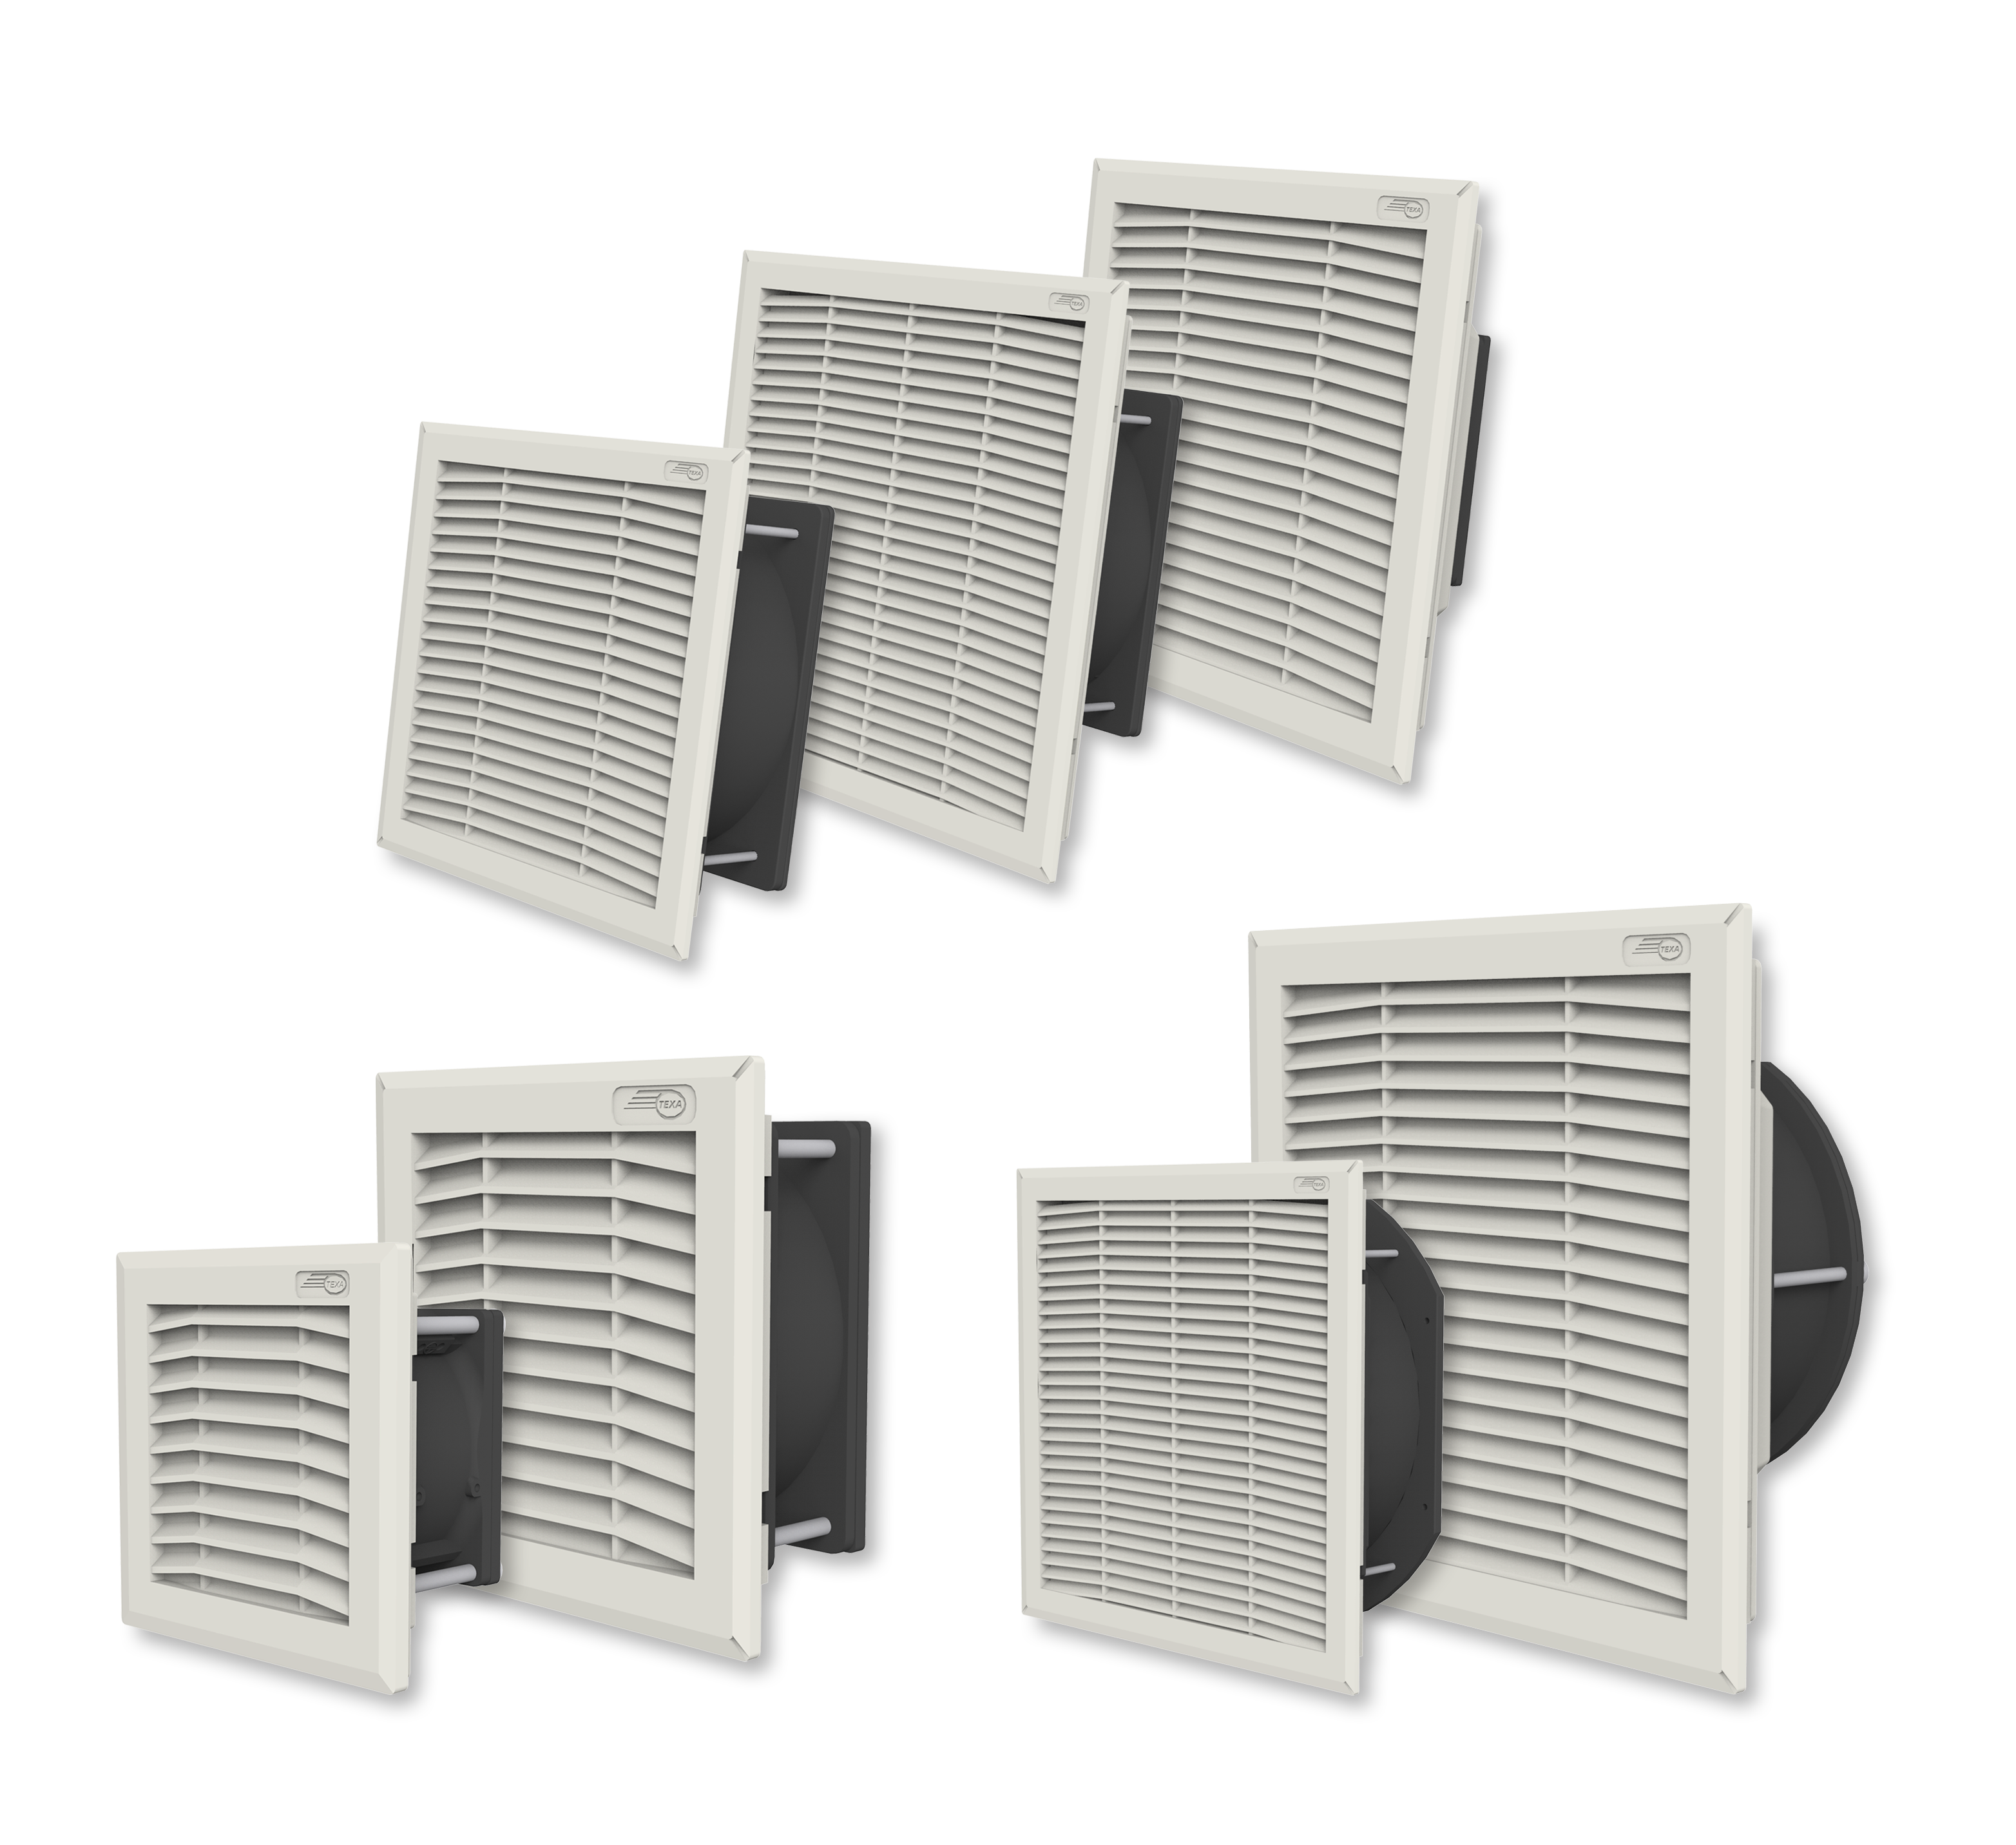 Ventilation Systems And Enclosure Accessories Texa